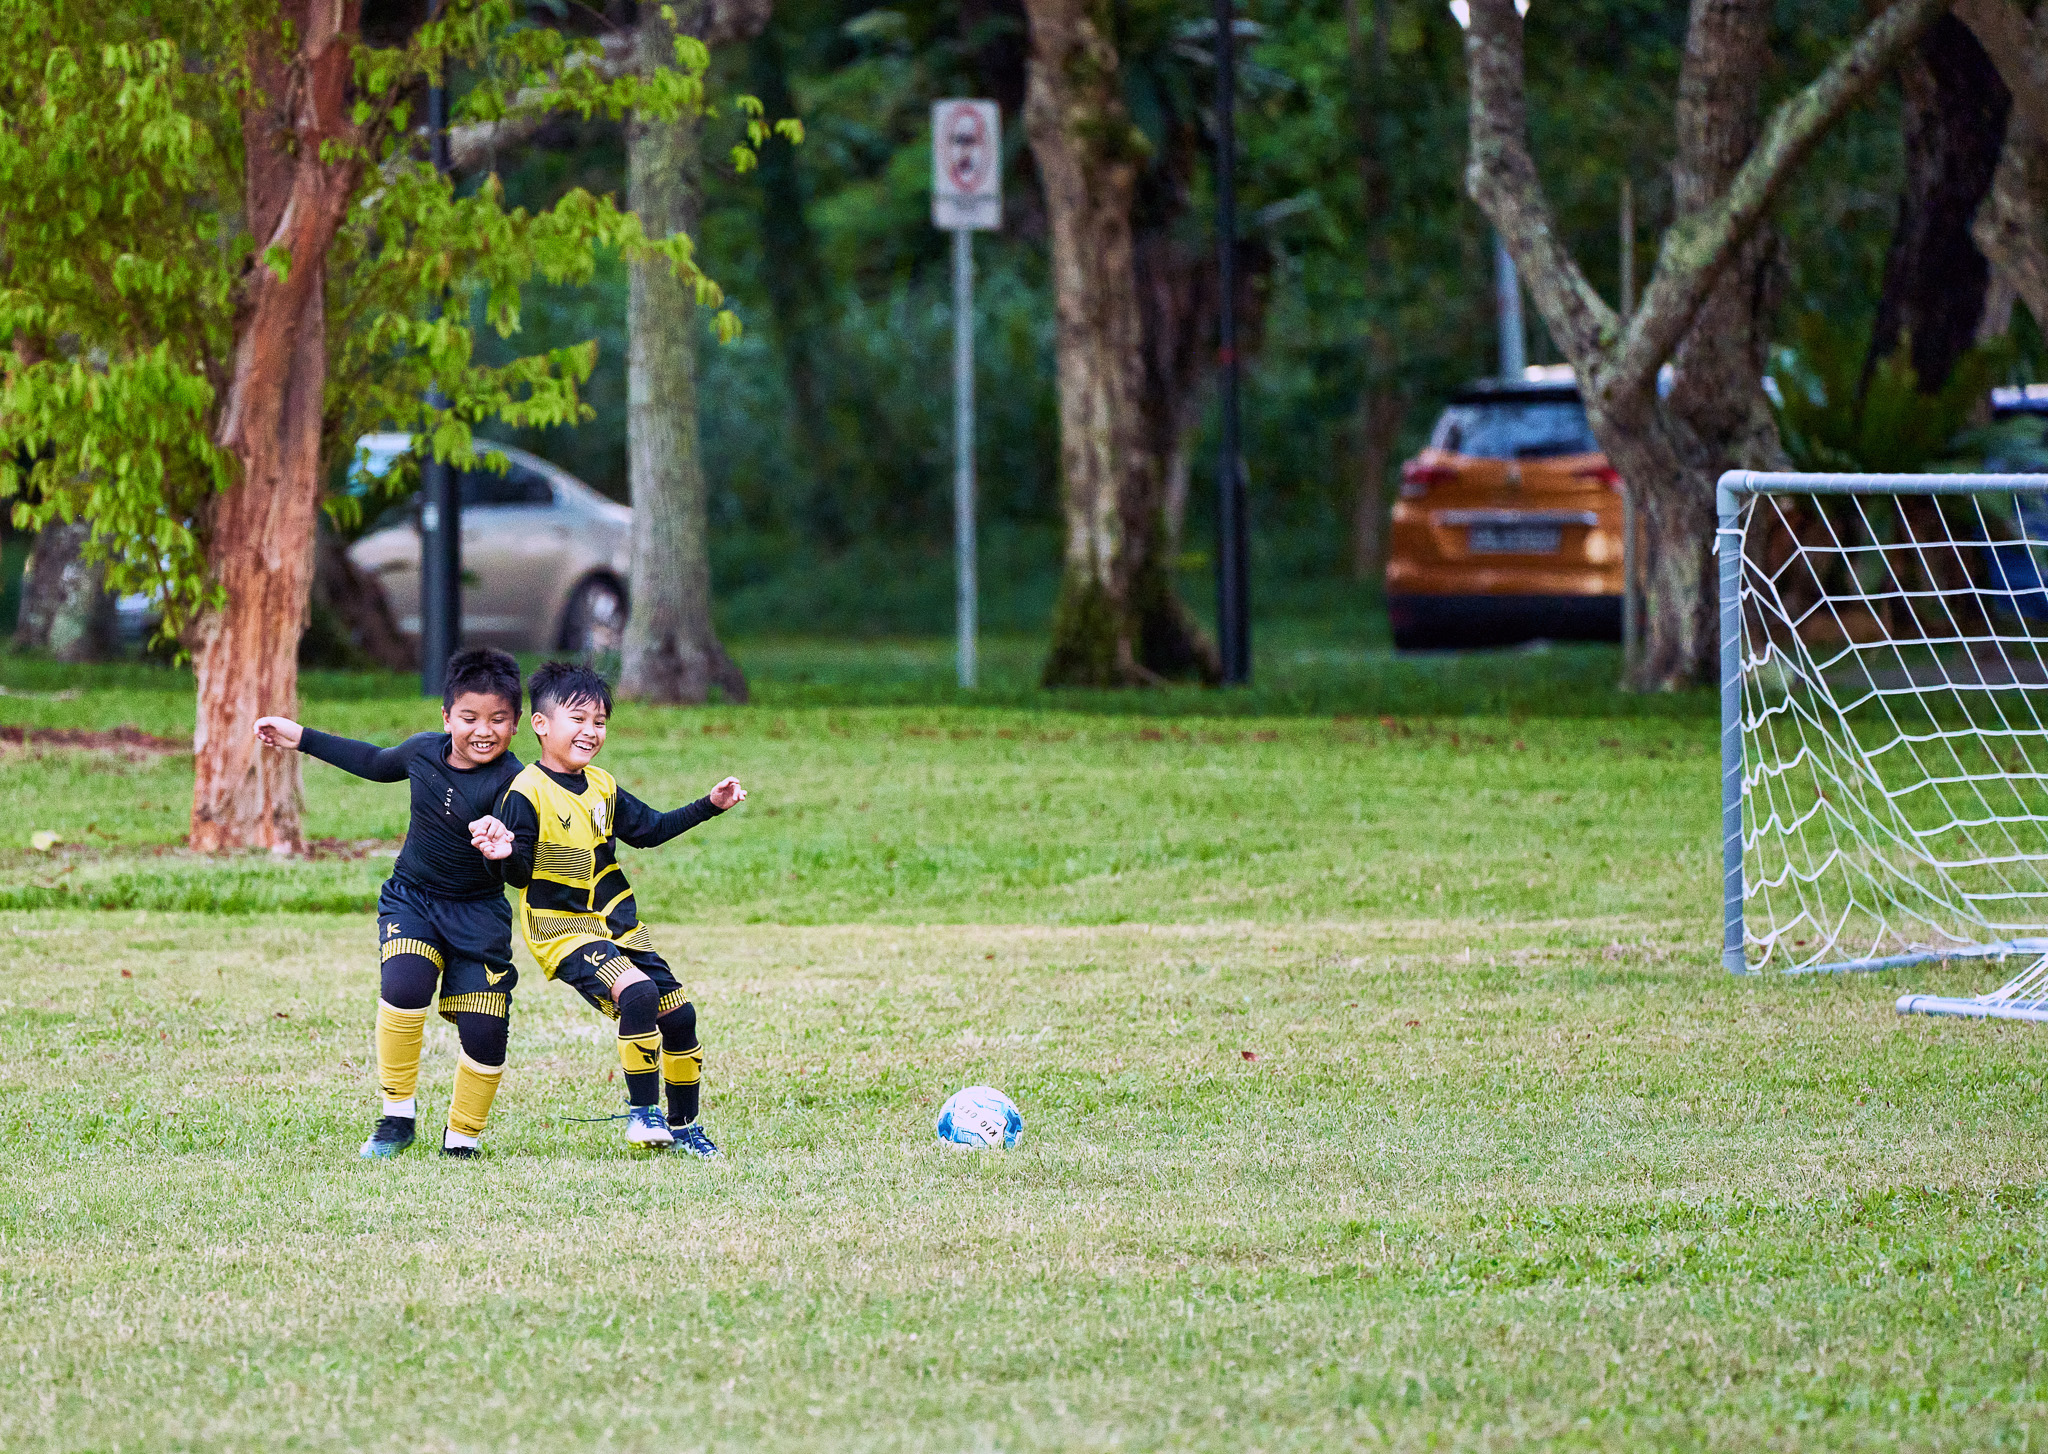 Young kids in a friendly tussle at their Sunday evening soccer, Pasir Ris Park, Singapore